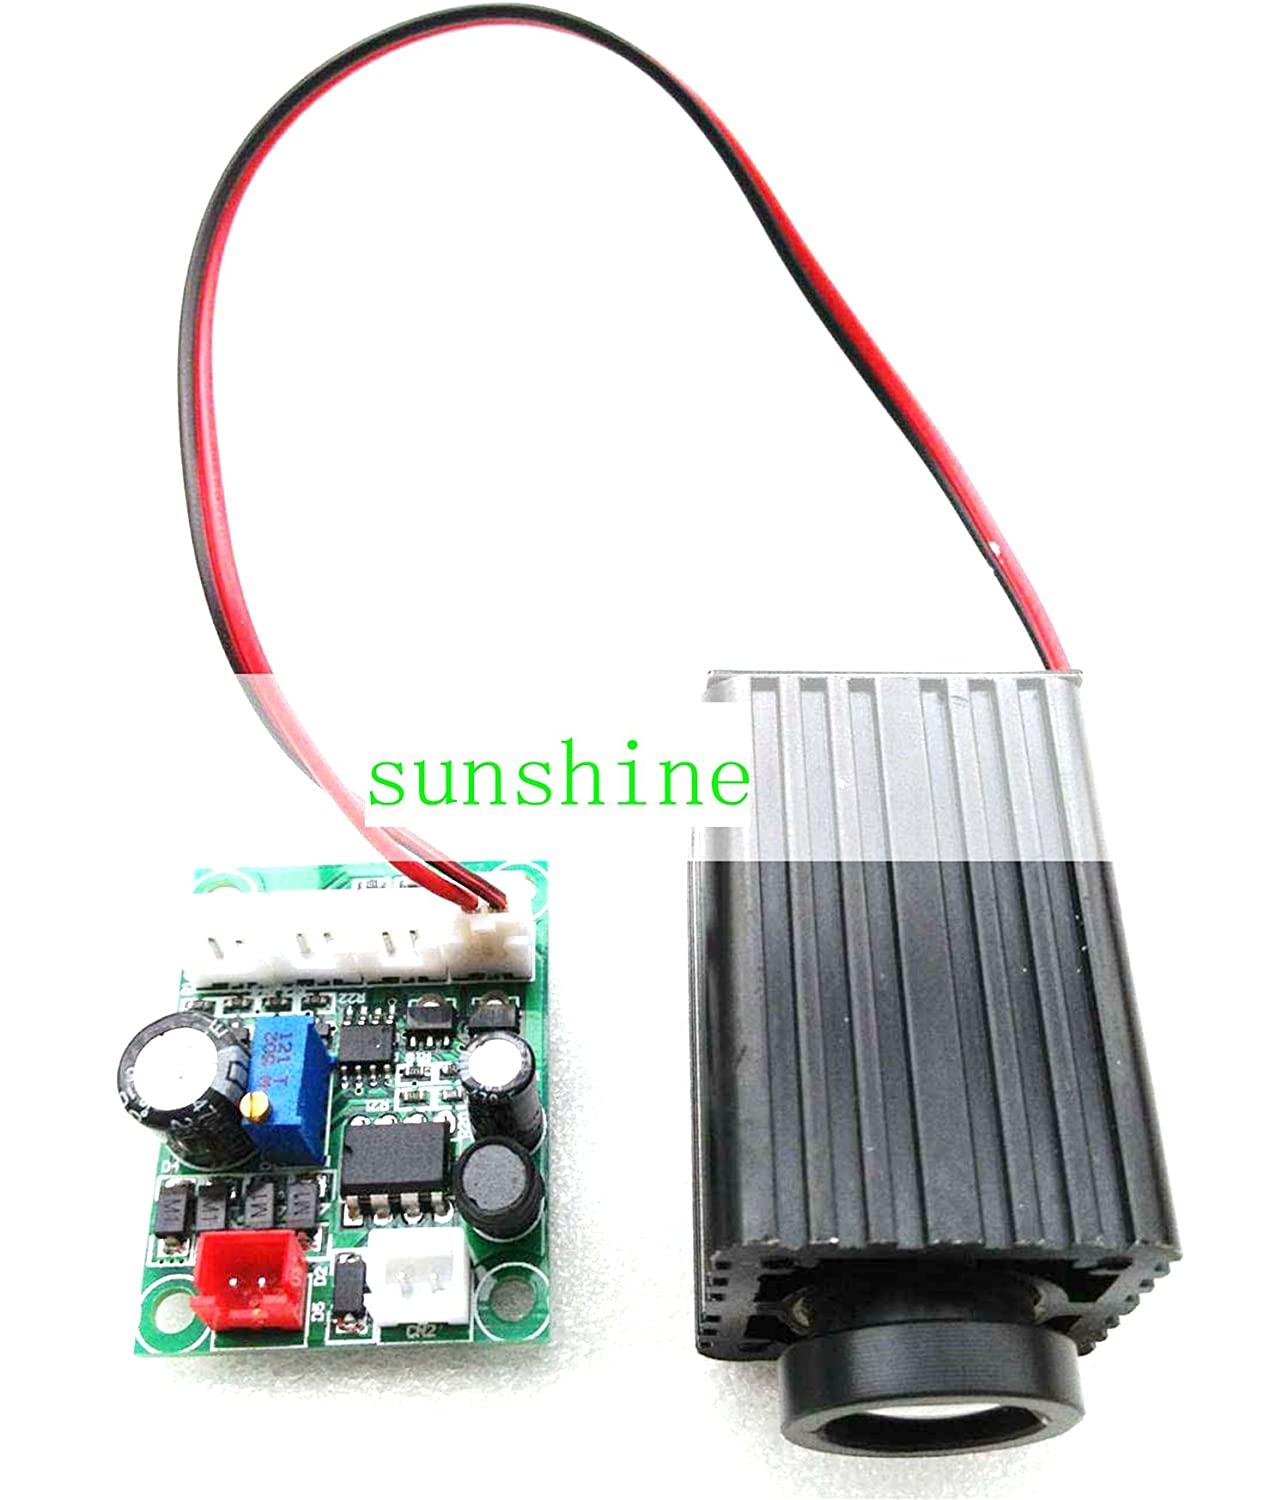 Industry Laser Module 200mw 660nm Red Fat Beam Laser Dot Module 12V TTL & Adapter sunshine-electronics 660MD-200-FAT-12VTTL+ADPT